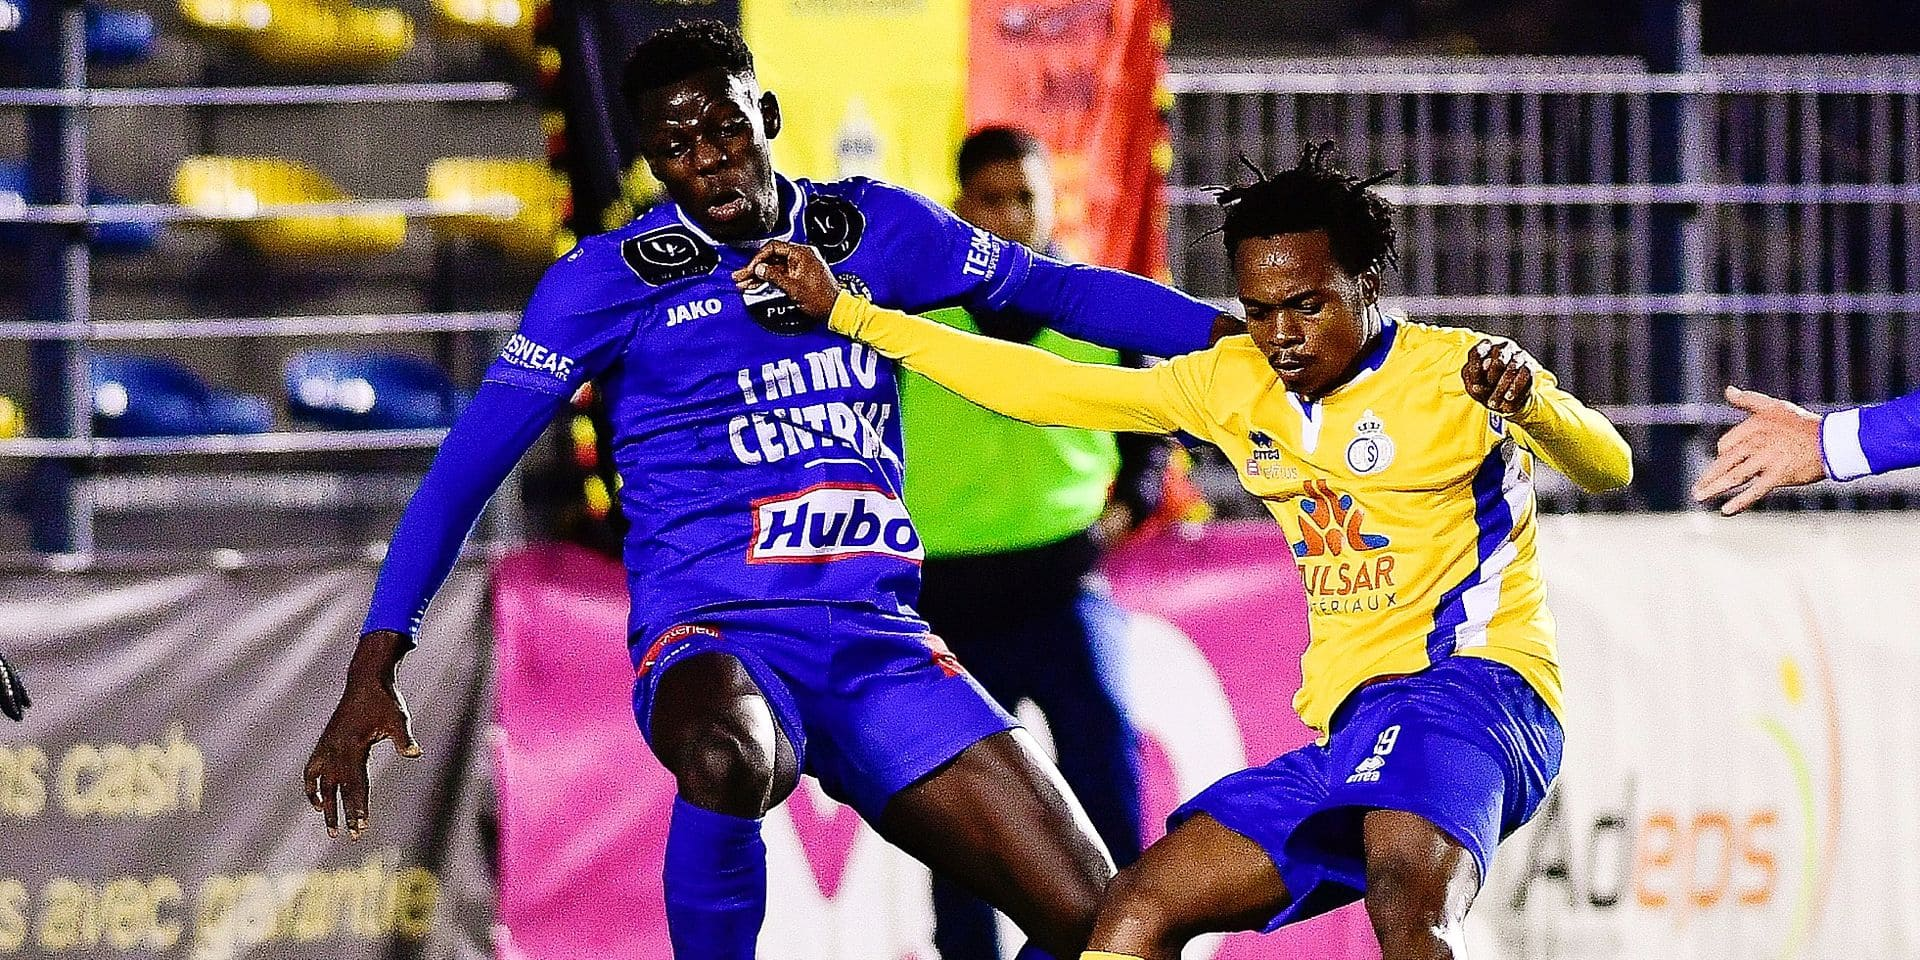 Union's Percy Tau scores a goal during a soccer game between Royale Union Saint-Gilloise (1B second division) and Royal Knokke FC (1st Amateur division), Thursday 06 December 2018 in Brussels, in the 1/8th finals of the 'Croky Cup' Belgian cup. BELGA PHOTO LAURIE DIEFFEMBACQ